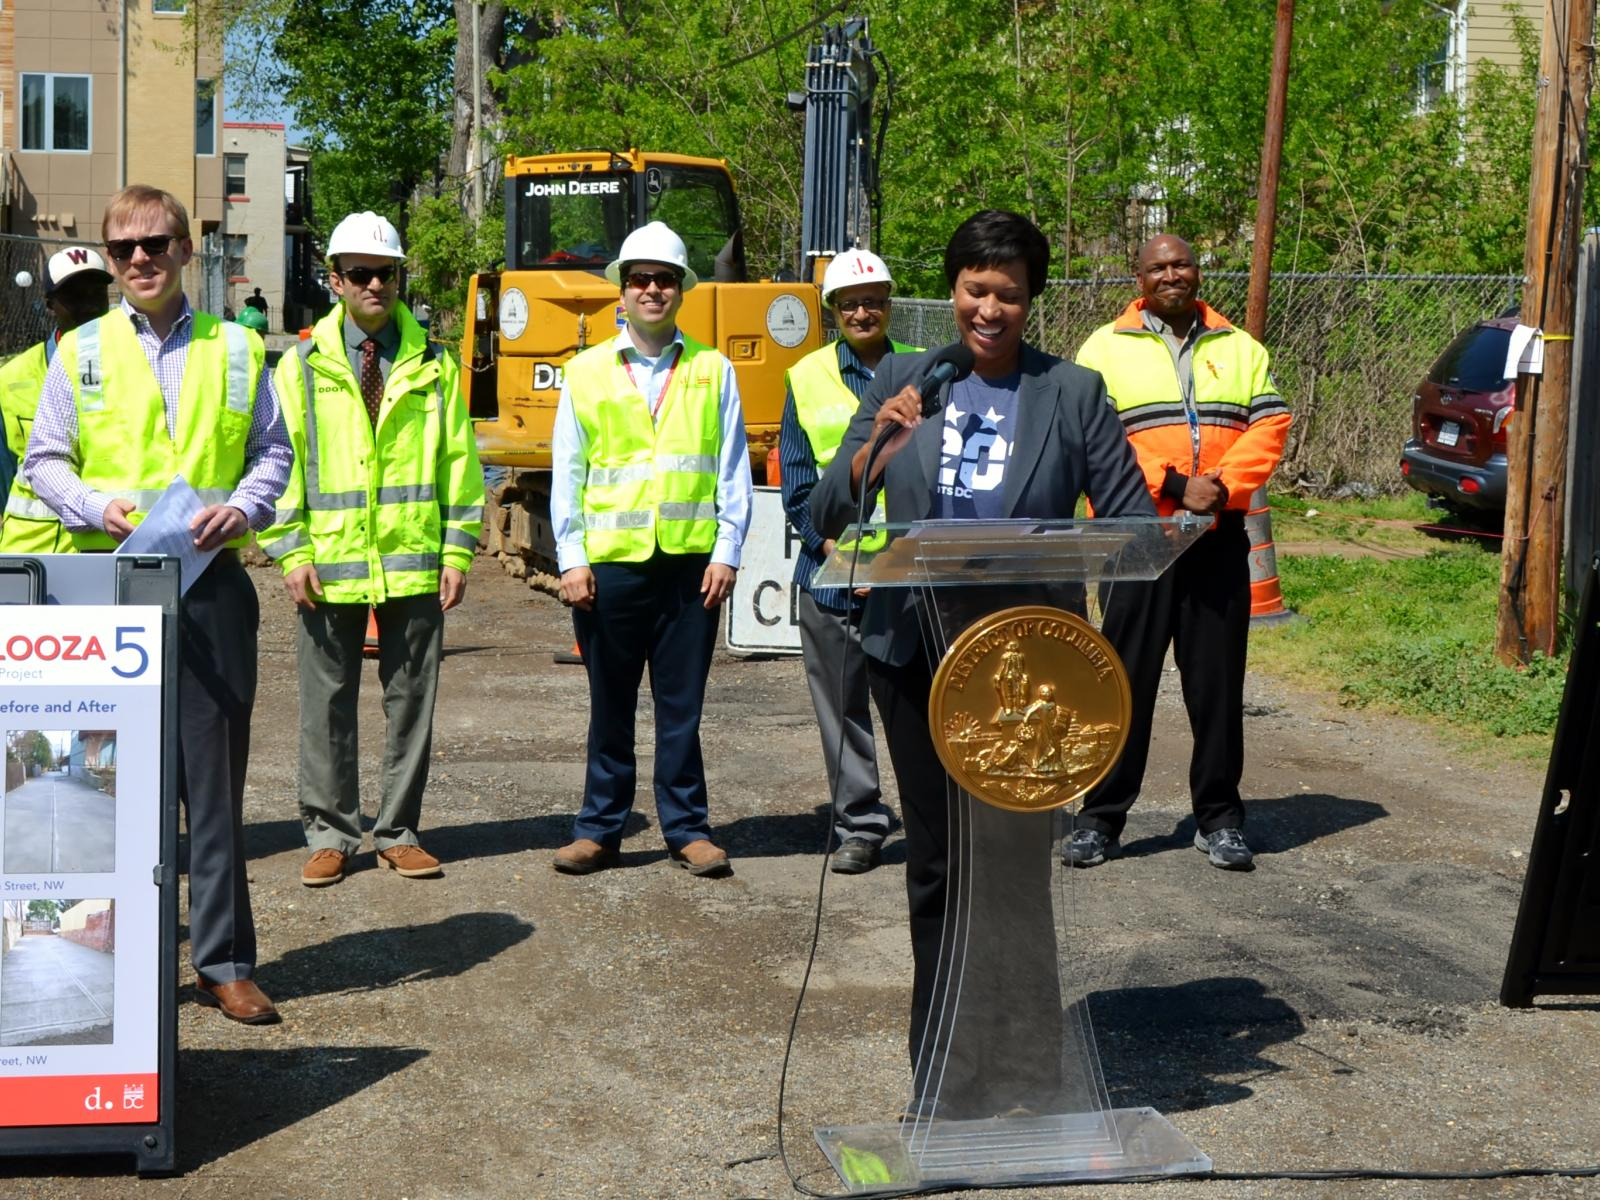 Alleypalooza 5 kickoff event with Mayor Bowser and DDOT